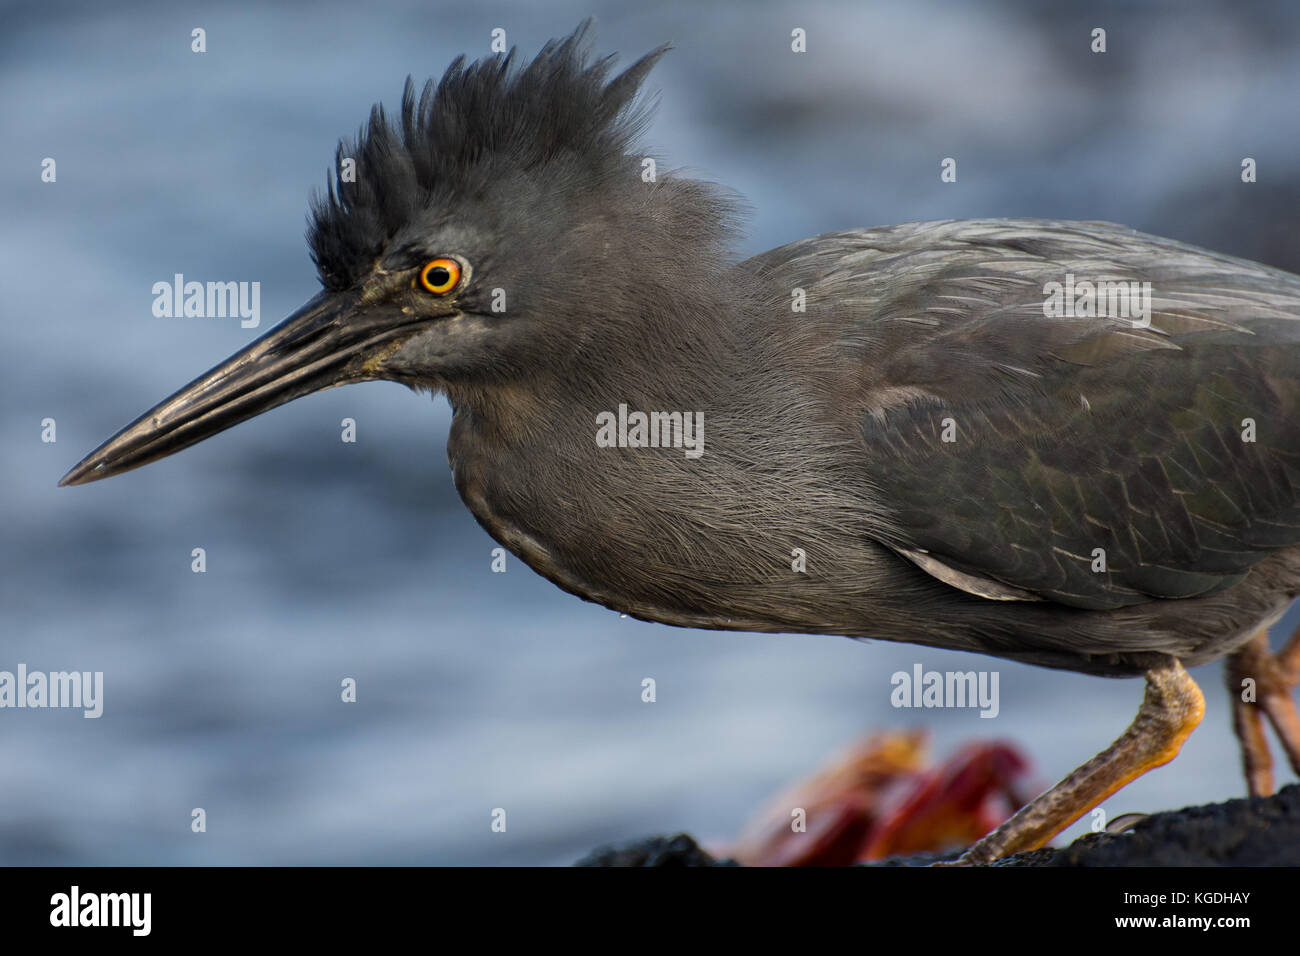 A lava heron (Butorides sundevalli) flares its crest feathers for a moment. Stock Photo